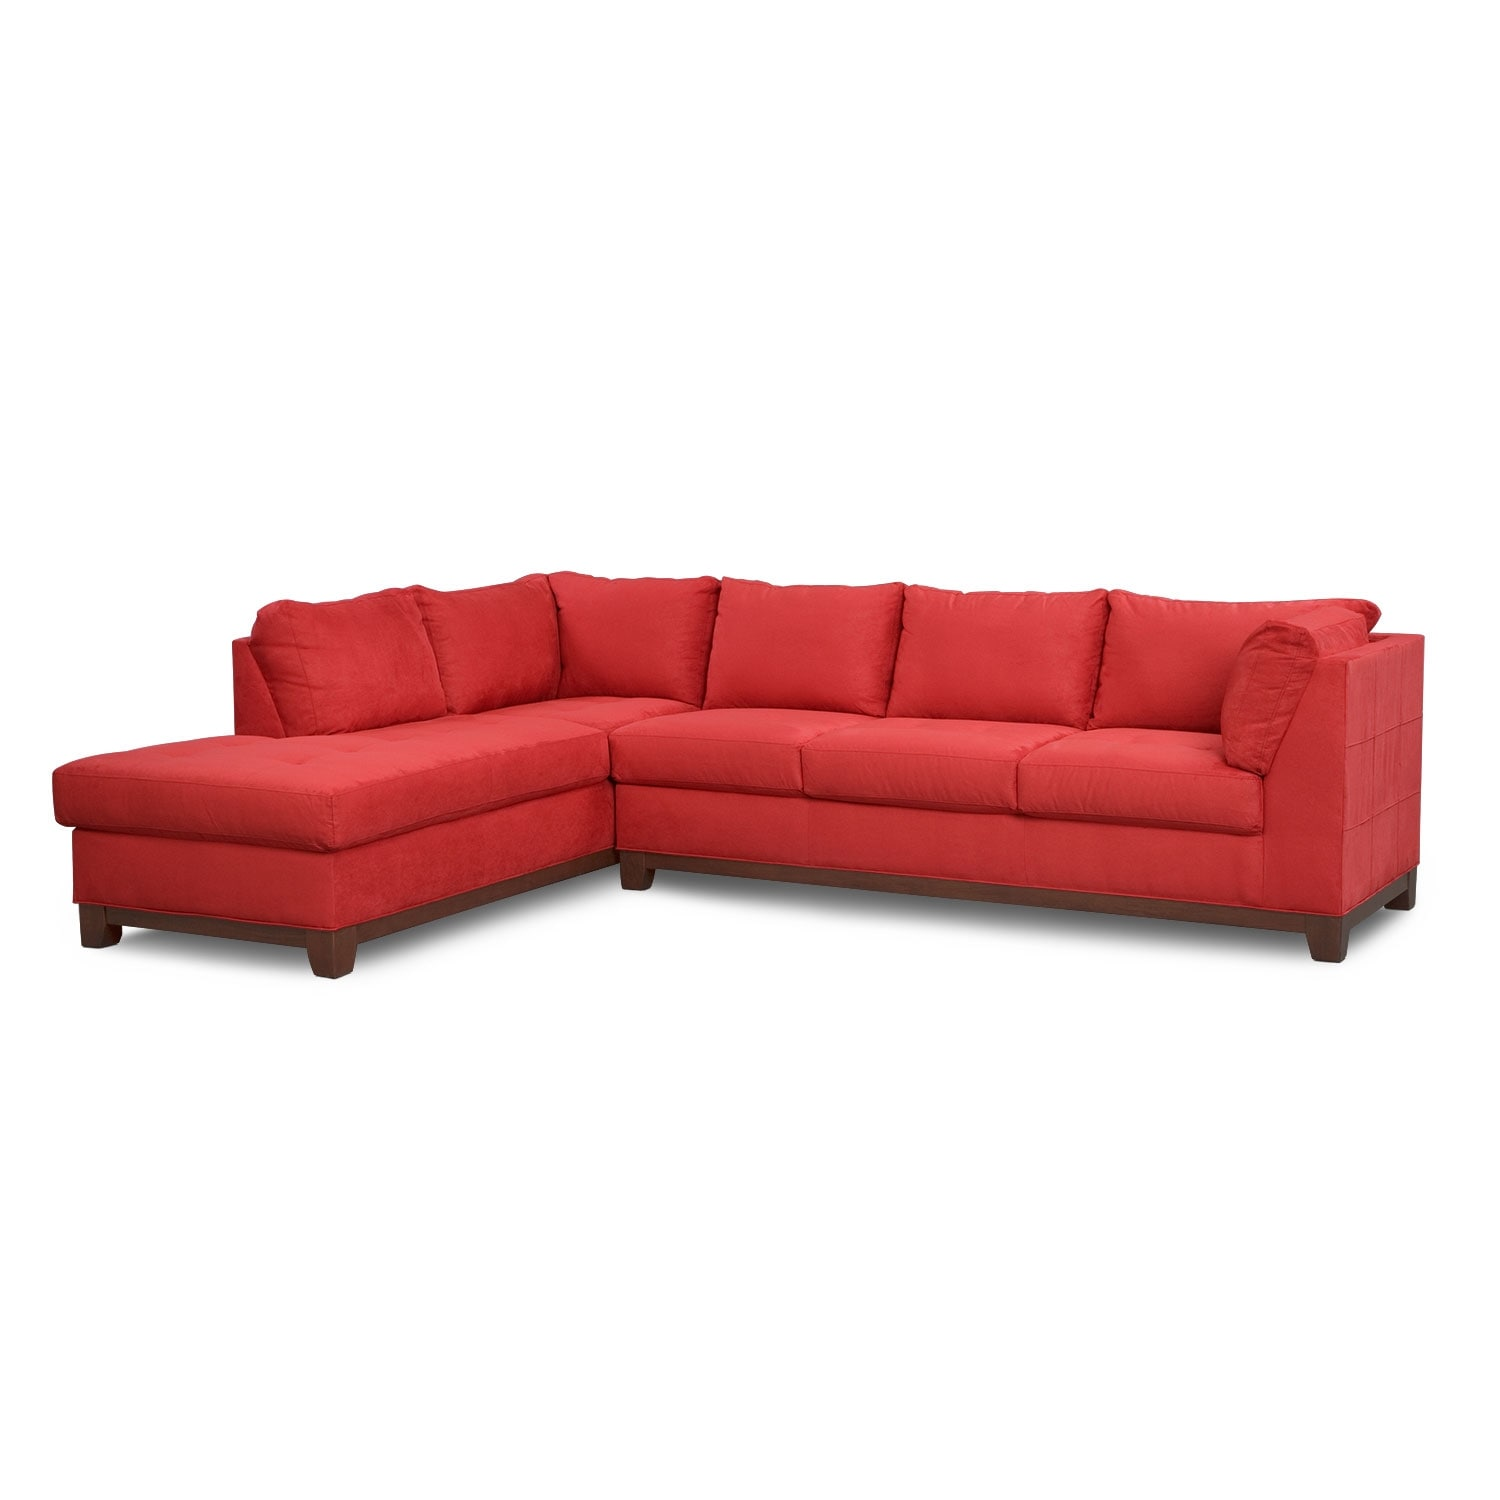 Soho 2 piece sectional with left facing chaise red for 2 piece sectional sofa with chaise